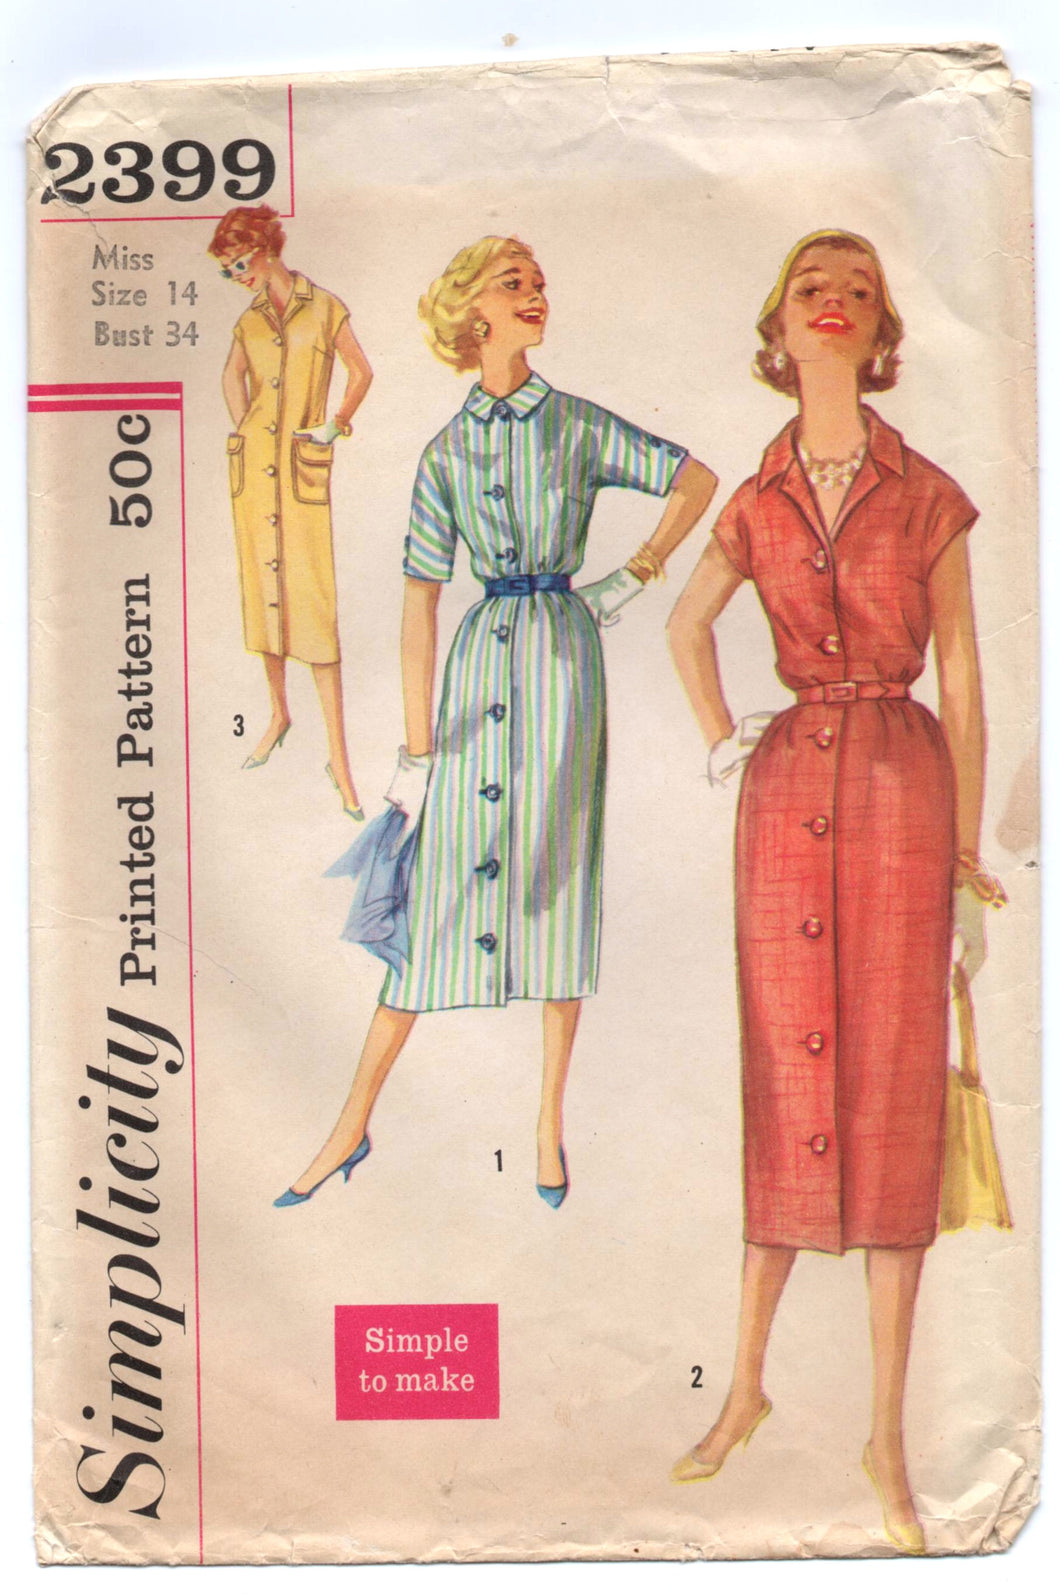 1950's Simplicity One-Piece Sheath Day Dress Pattern - Bust 34